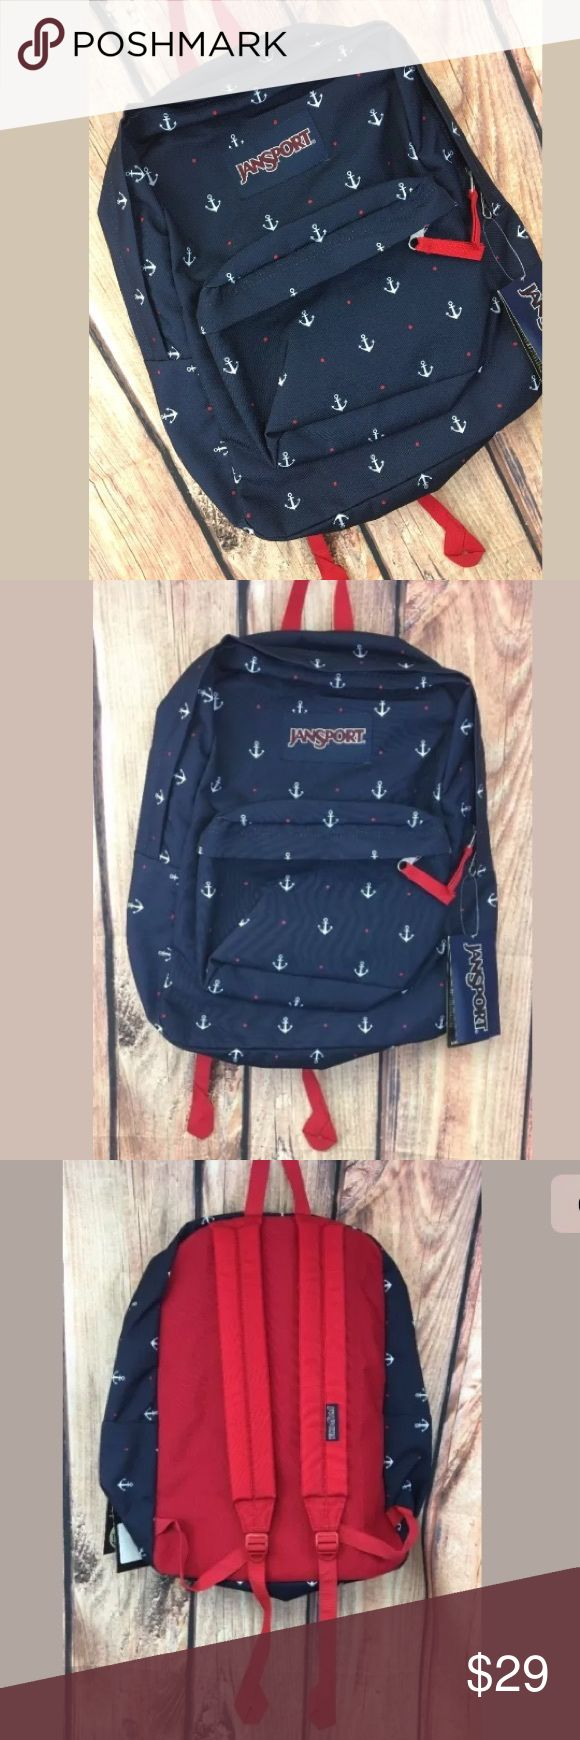 """Jansport Nautical Anchor Backpack School Bag Navy Jansport Nautical Anchor Superbreak Backpack School Bag Navy Blue Red; new with tags; 17"""" tall x 16"""" wide; lightweight canvas style bag Jansport Bags Backpacks"""